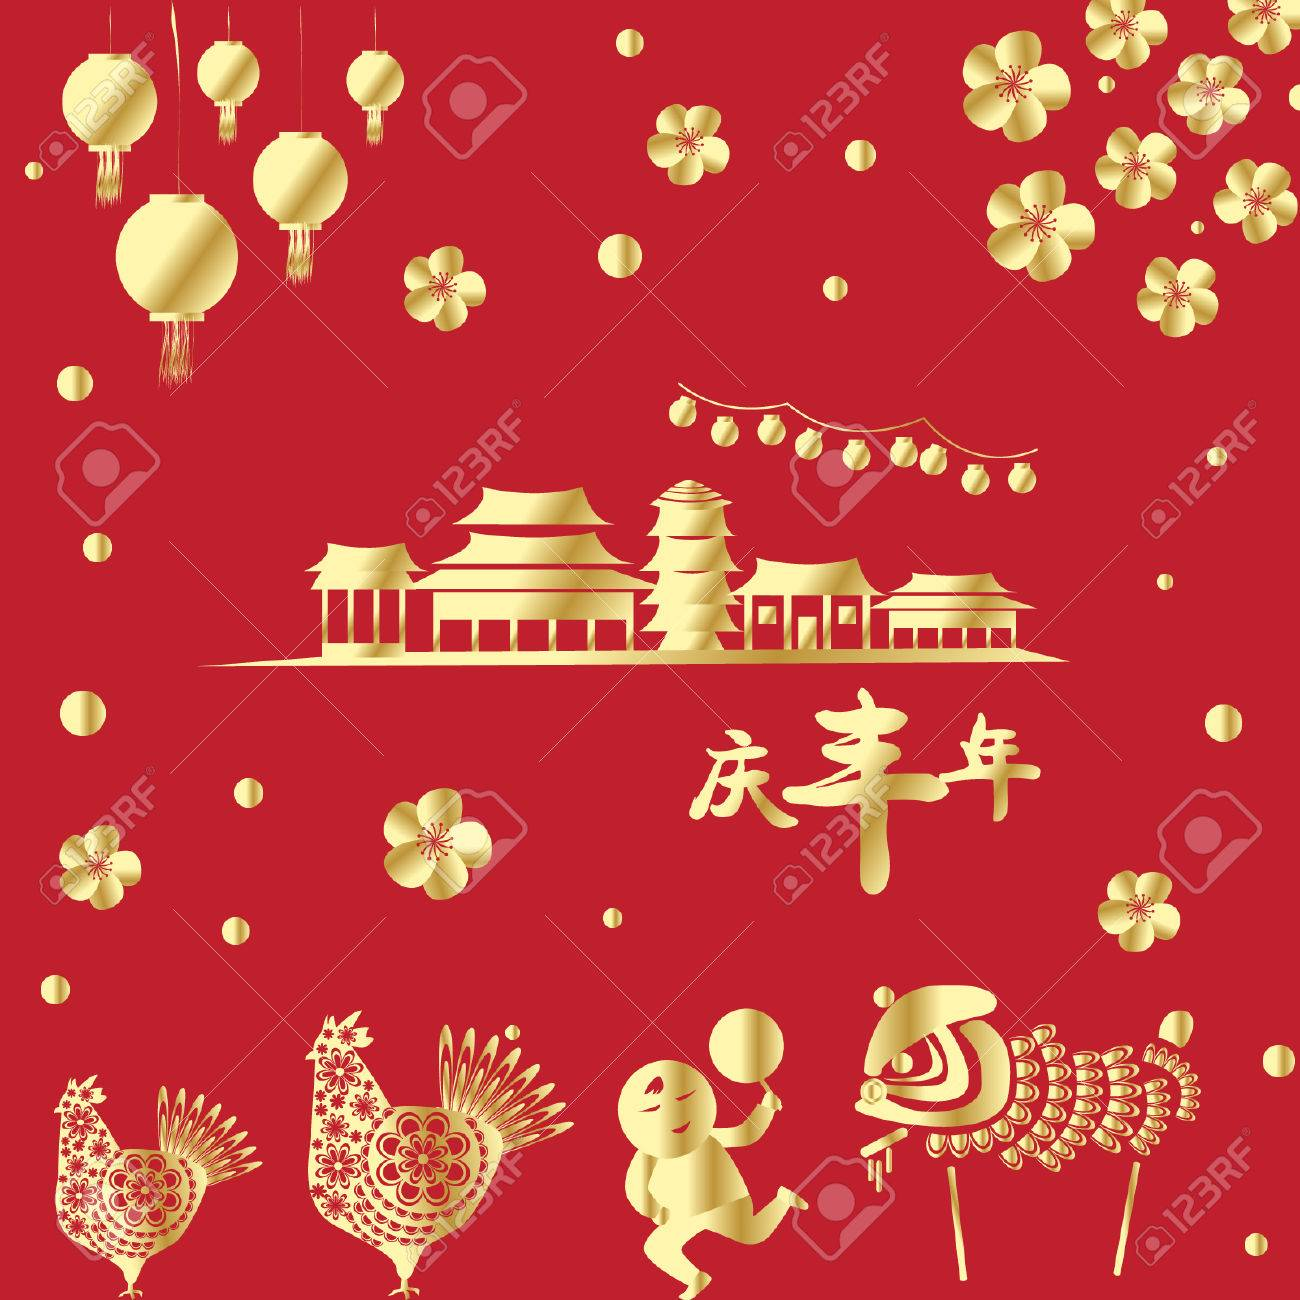 classic design for chinese new year 2017 the year of rooster chinese wording are